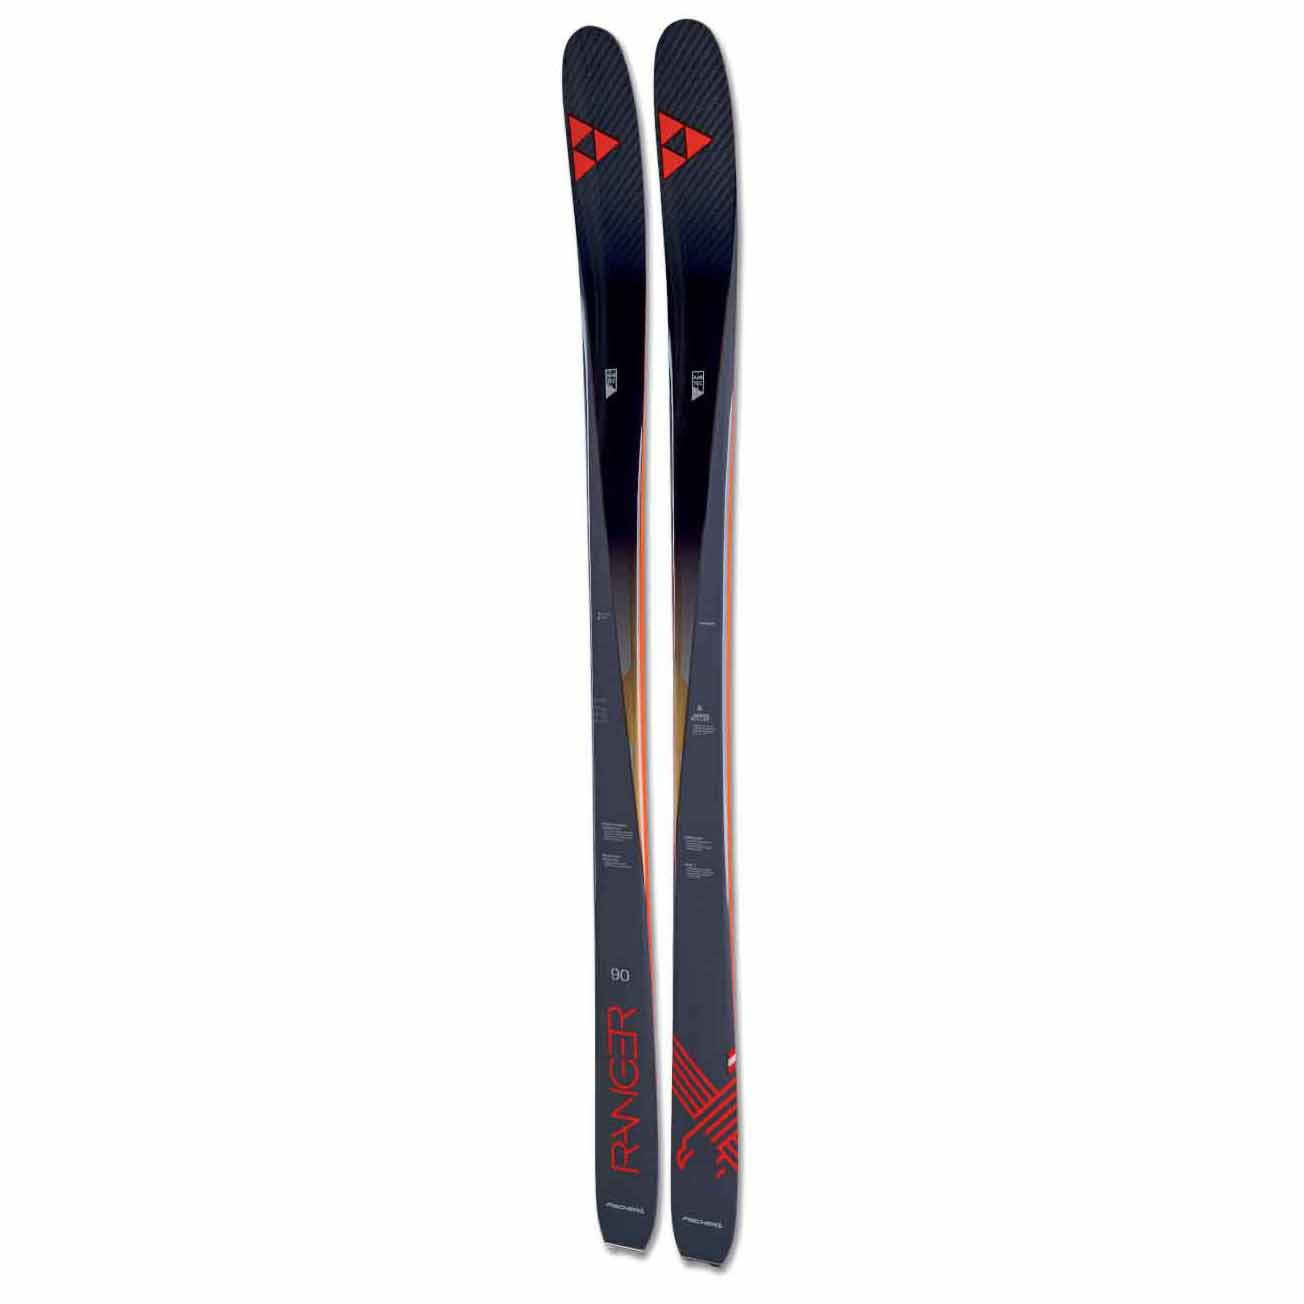 2017-18 Fischer Ranger 90 Ti Ski With Attack 11 Binding